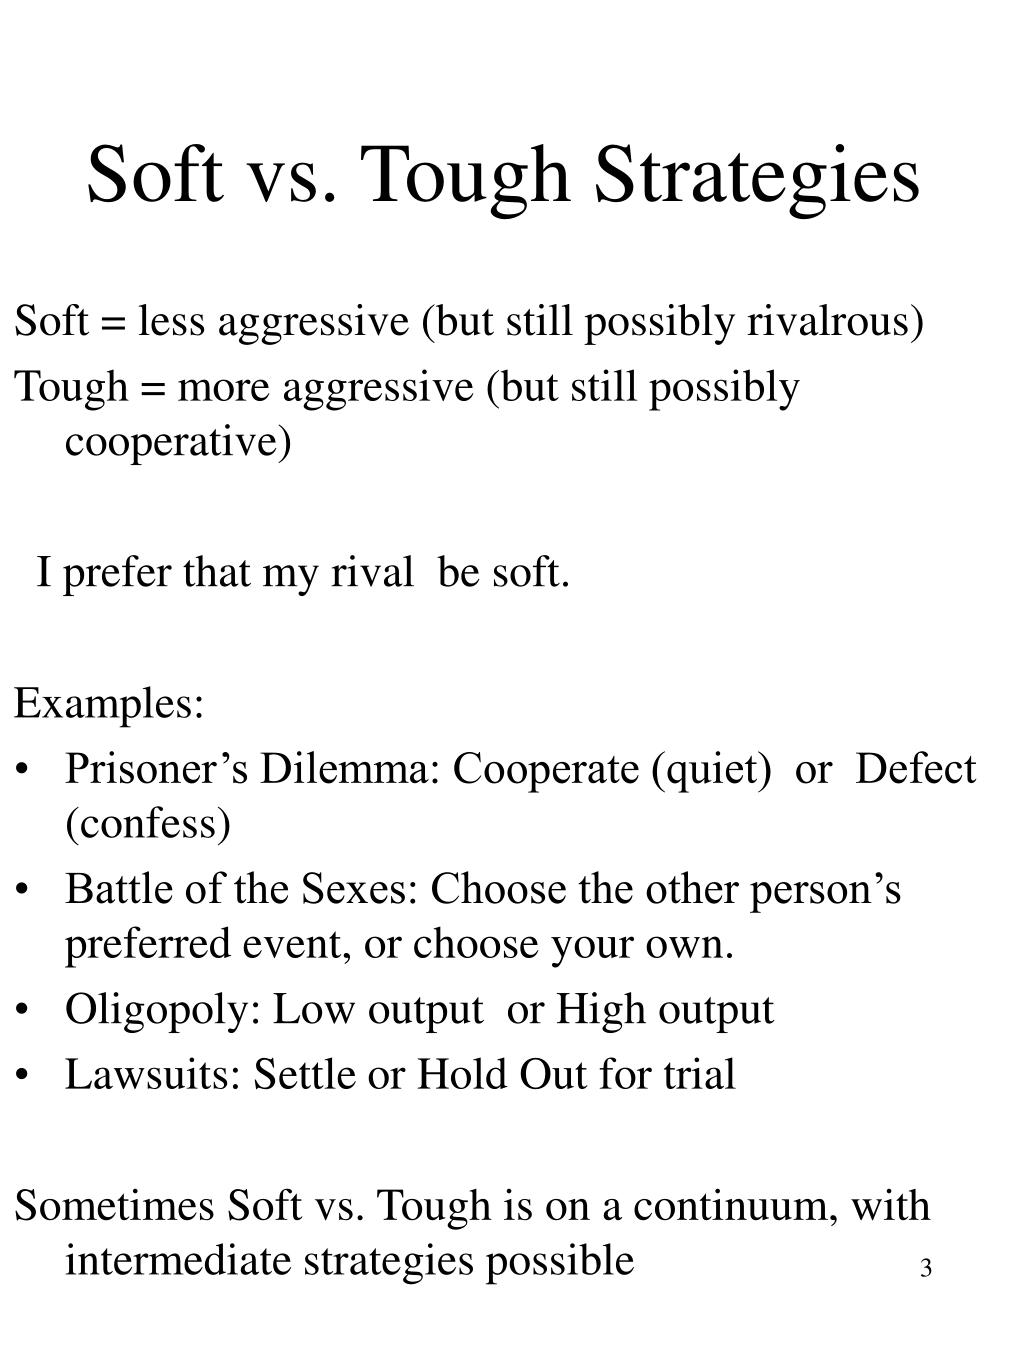 Soft vs. Tough Strategies